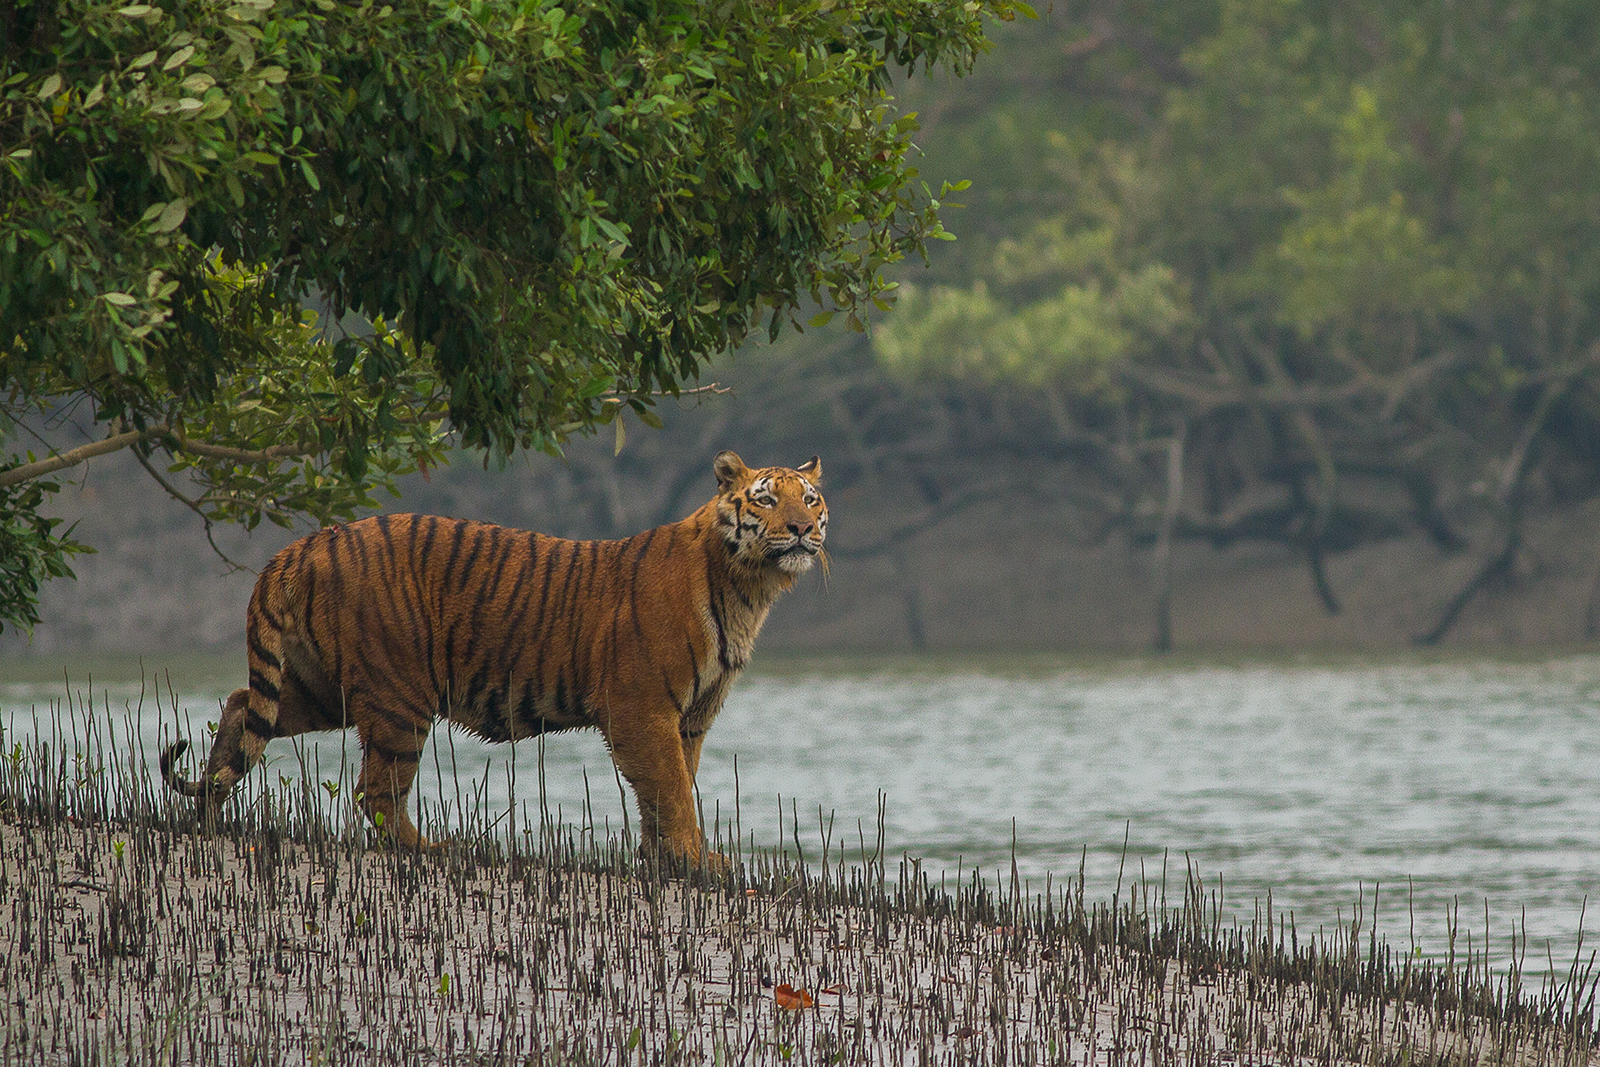 Sundarban Tiger Camp - Sundarban Tiger Camp & Top Places to Visit in Sunderbans